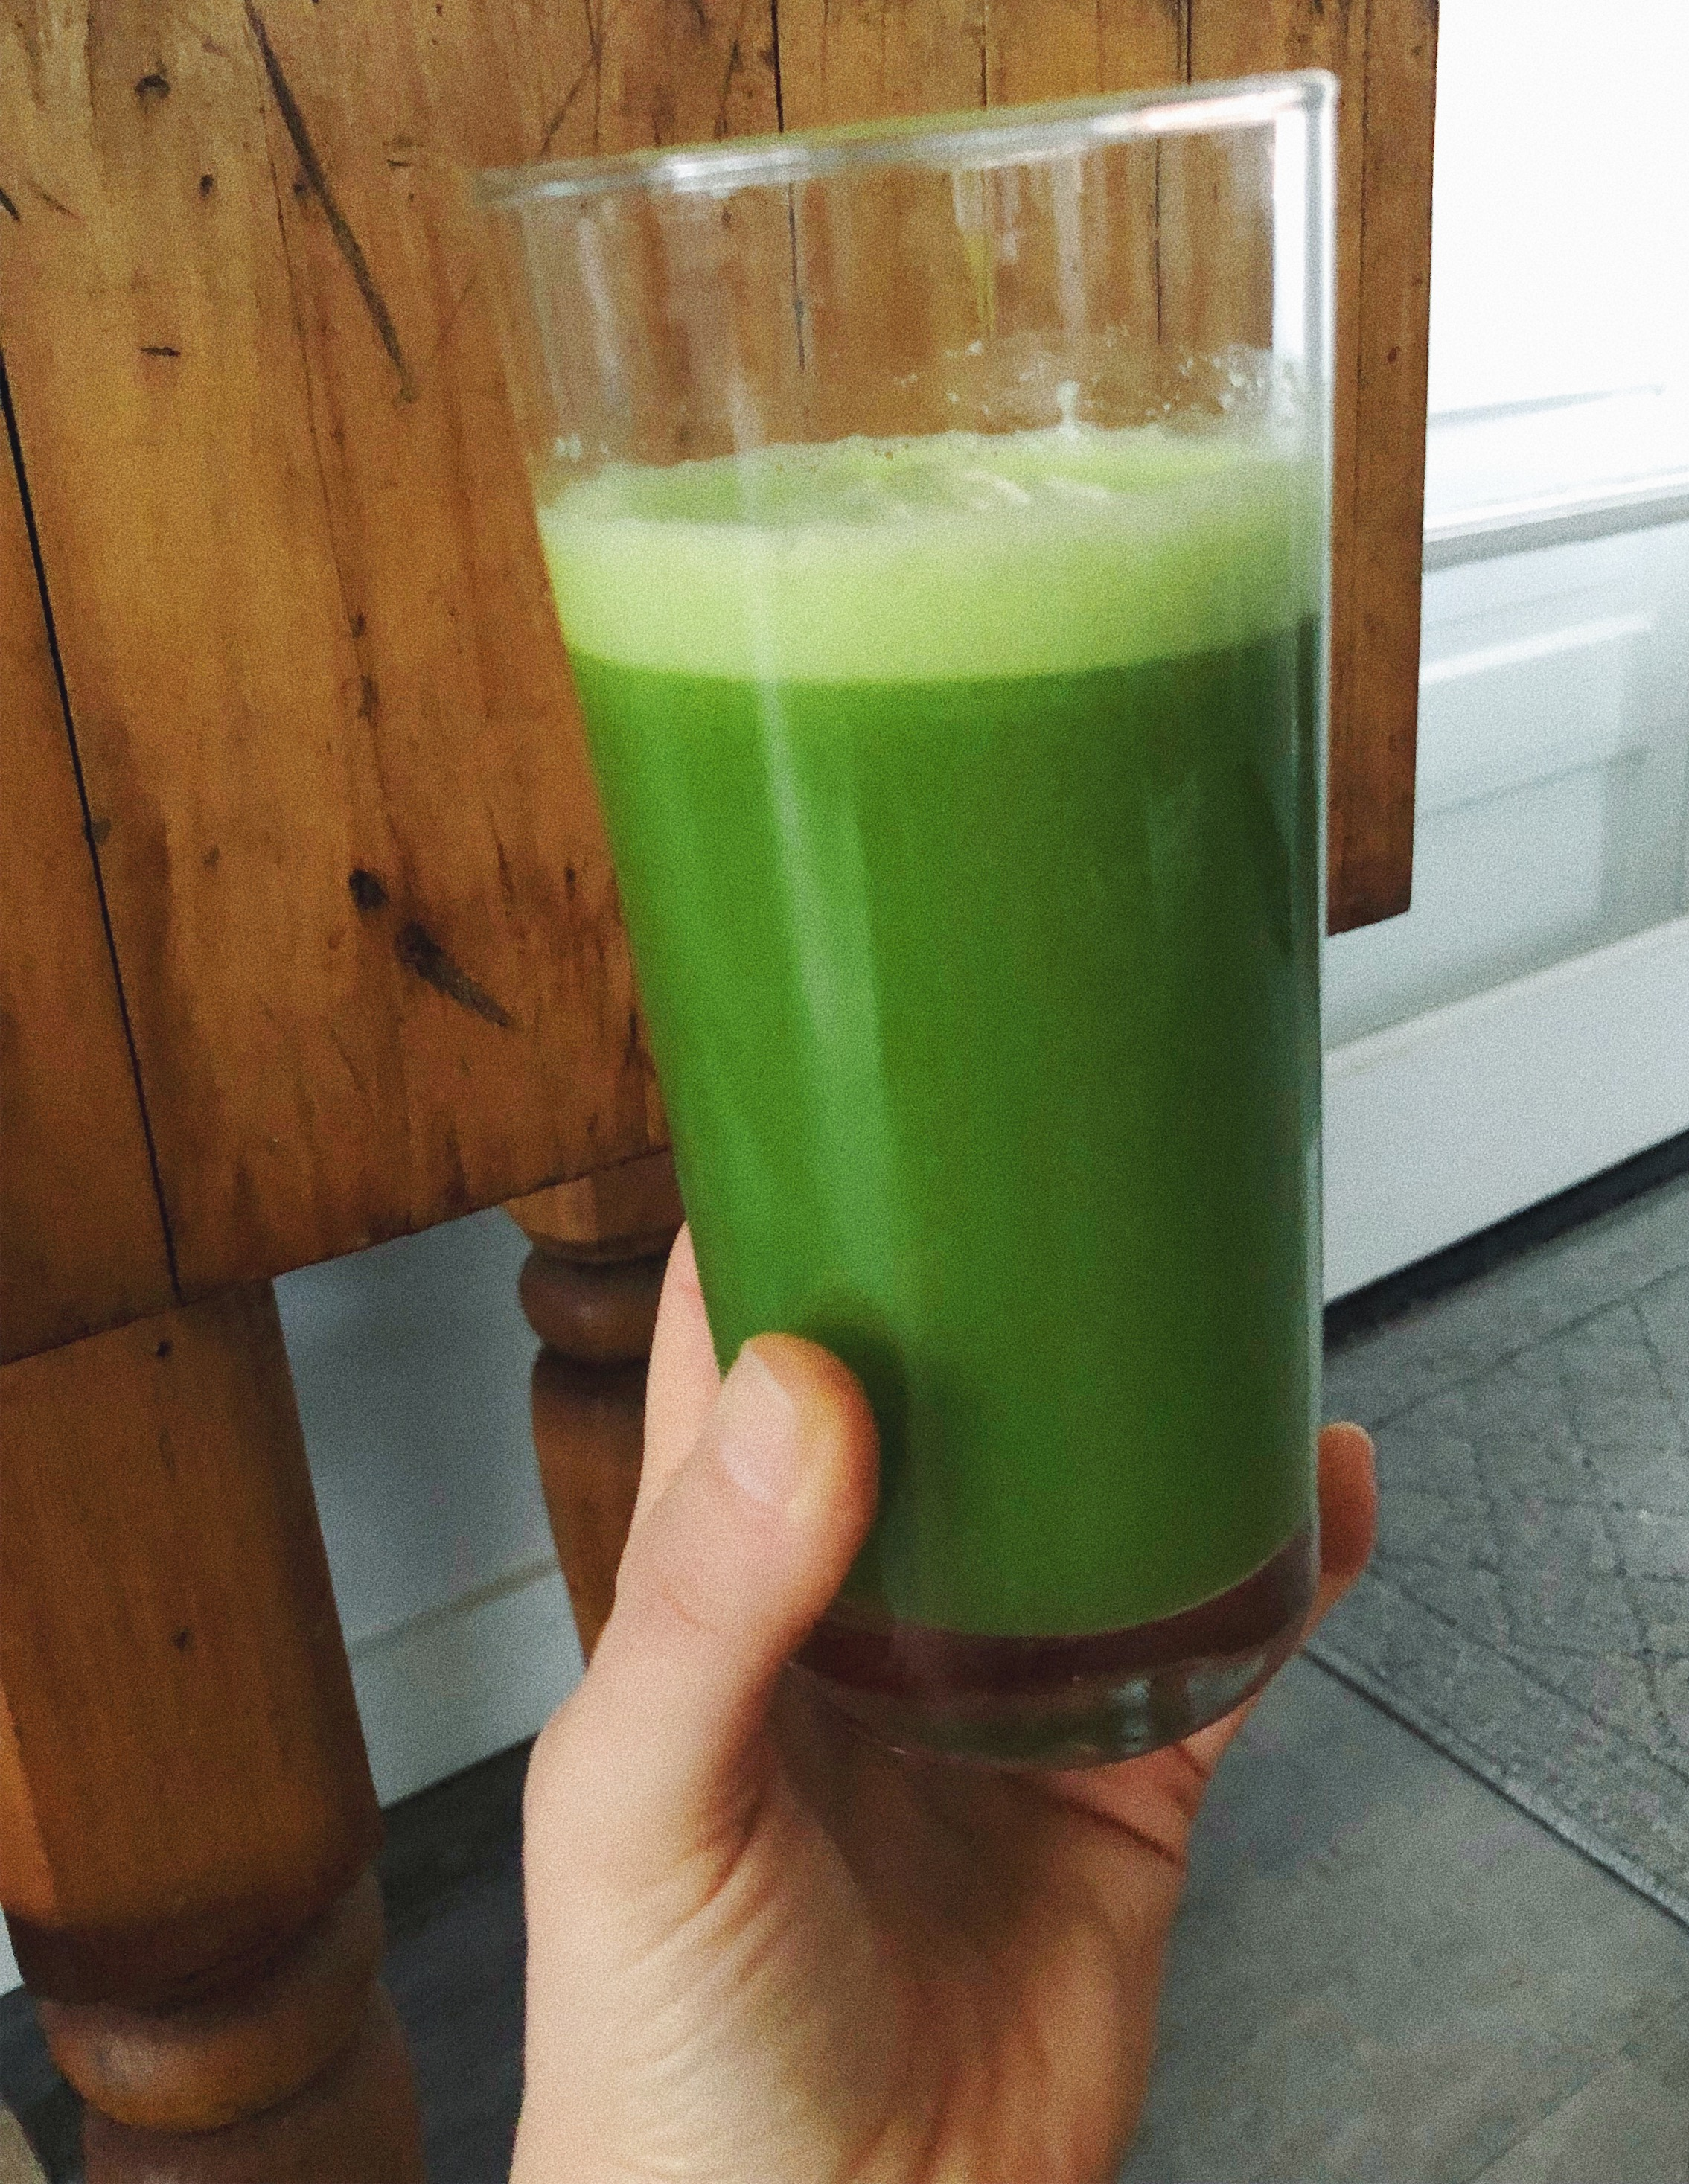 Green juice is a great way to get lots of nutrients and support the liver.